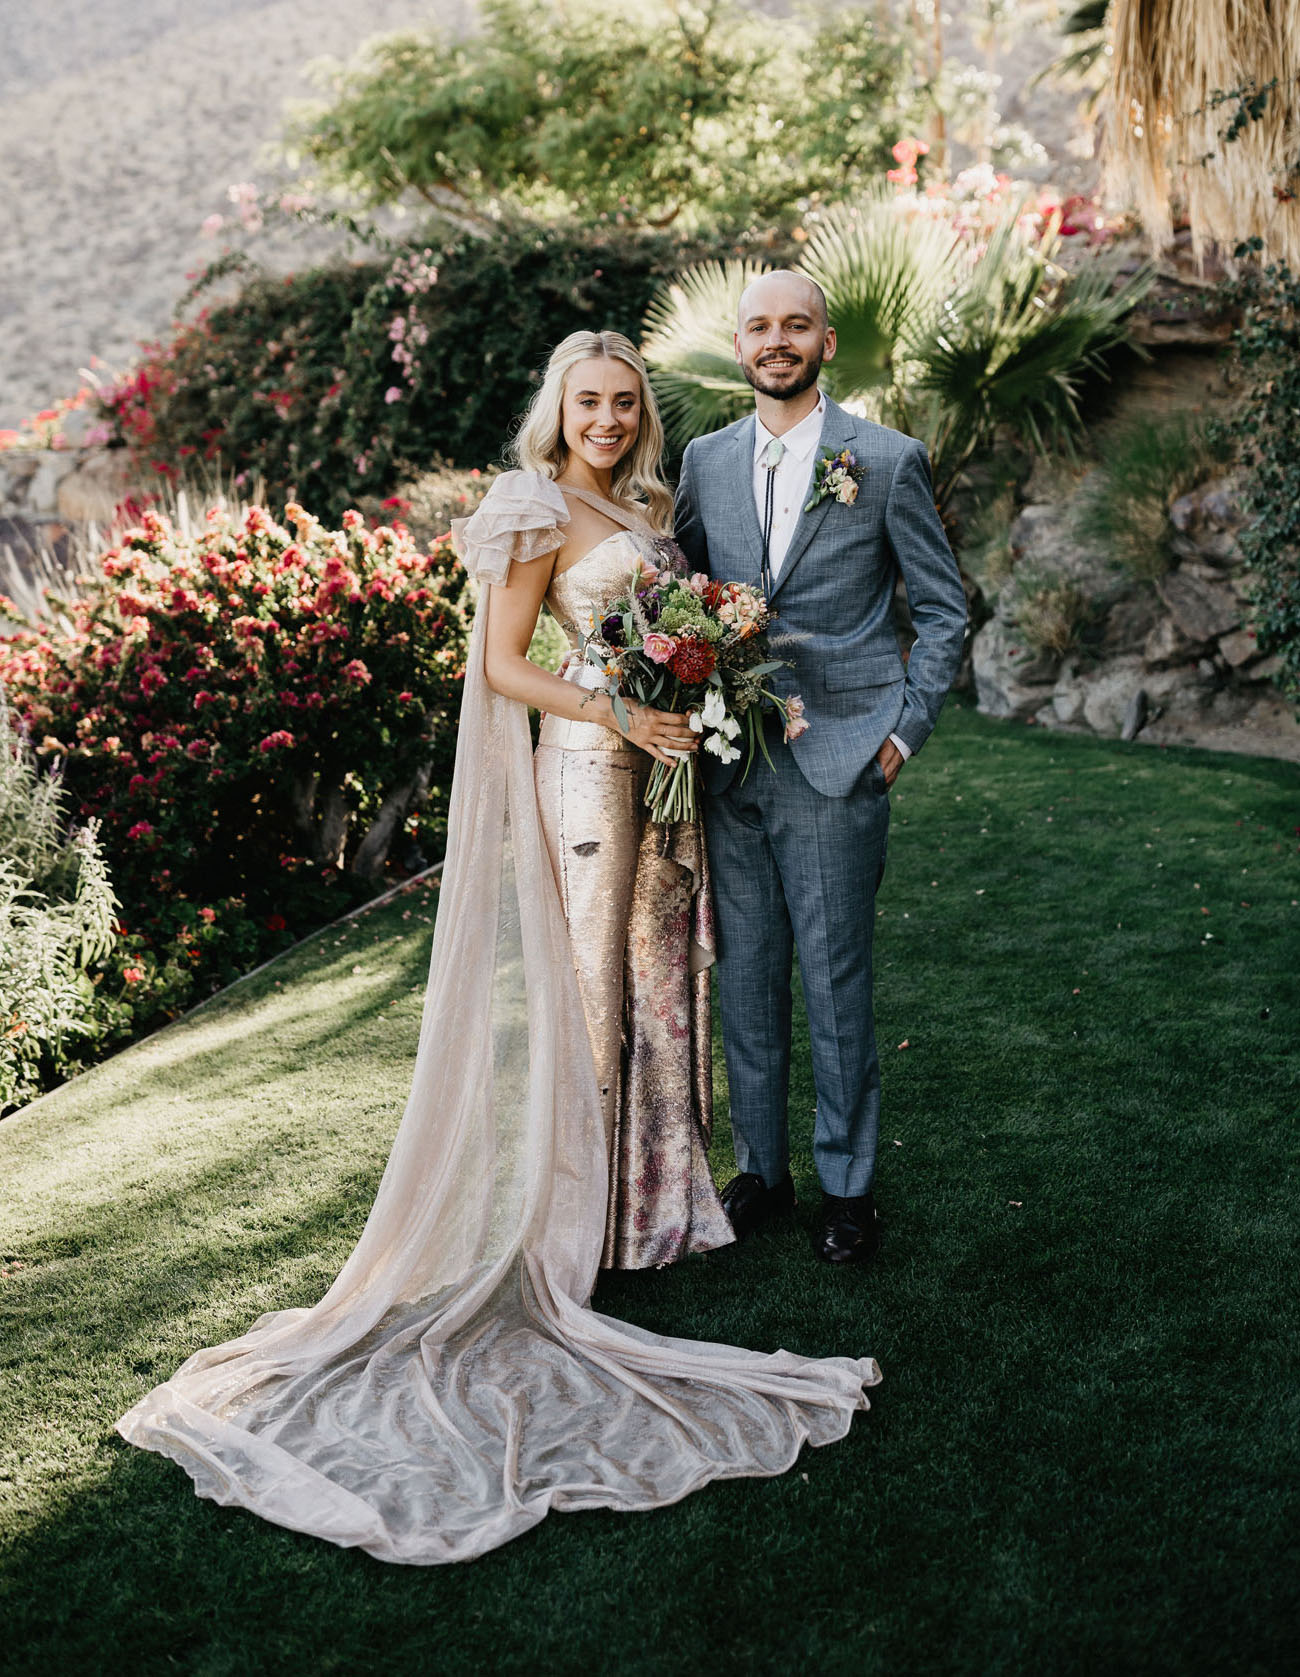 This couple went for a wedding in Palm Springs, and most of family and friends took part in the wedding